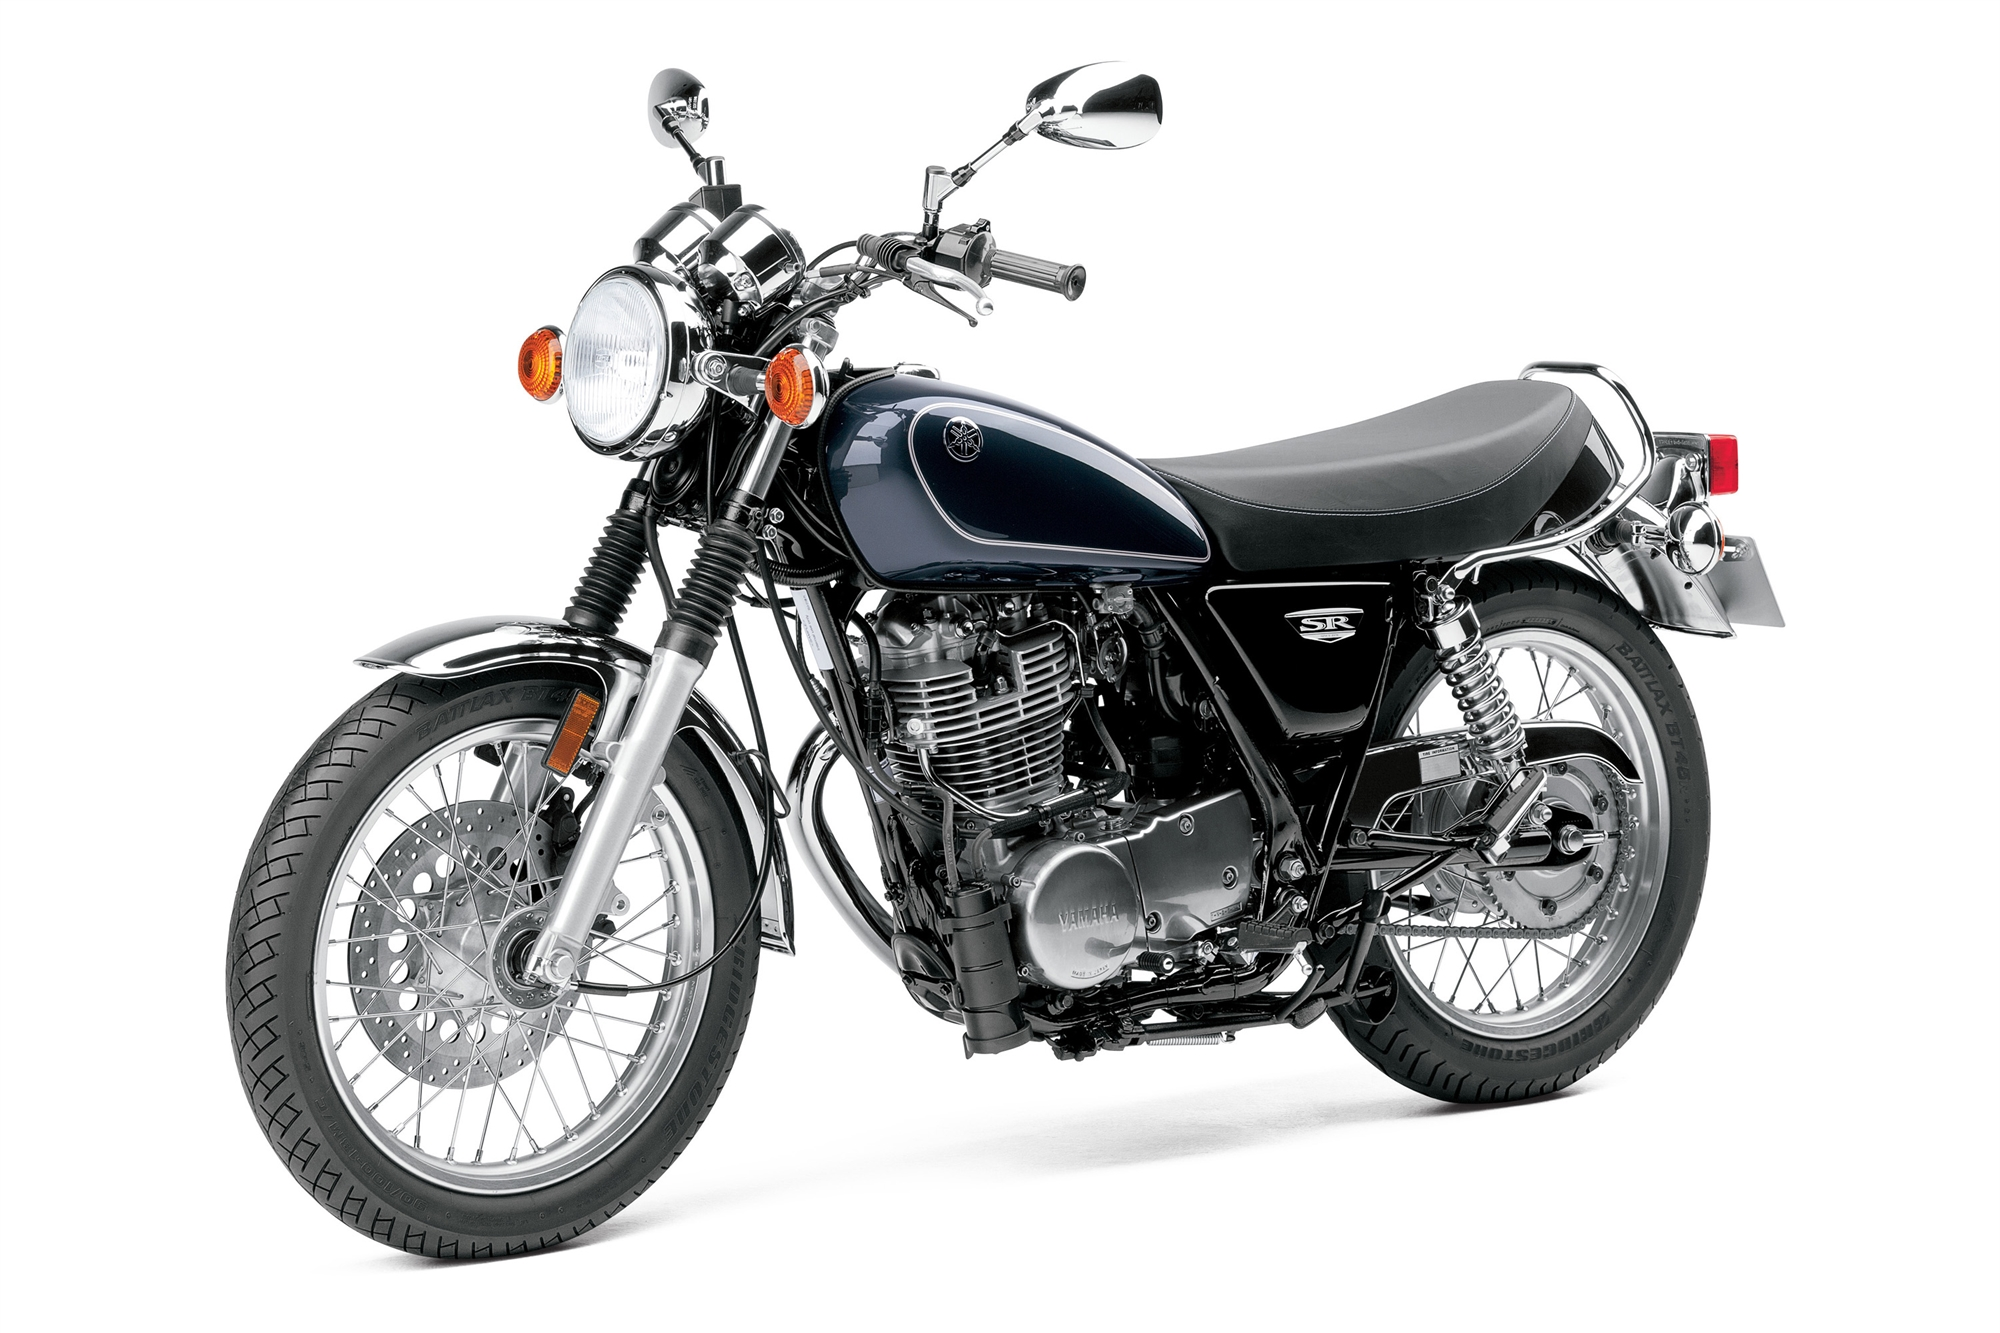 2015 Yamaha SR400 Makes It to the US in May - autoevolution